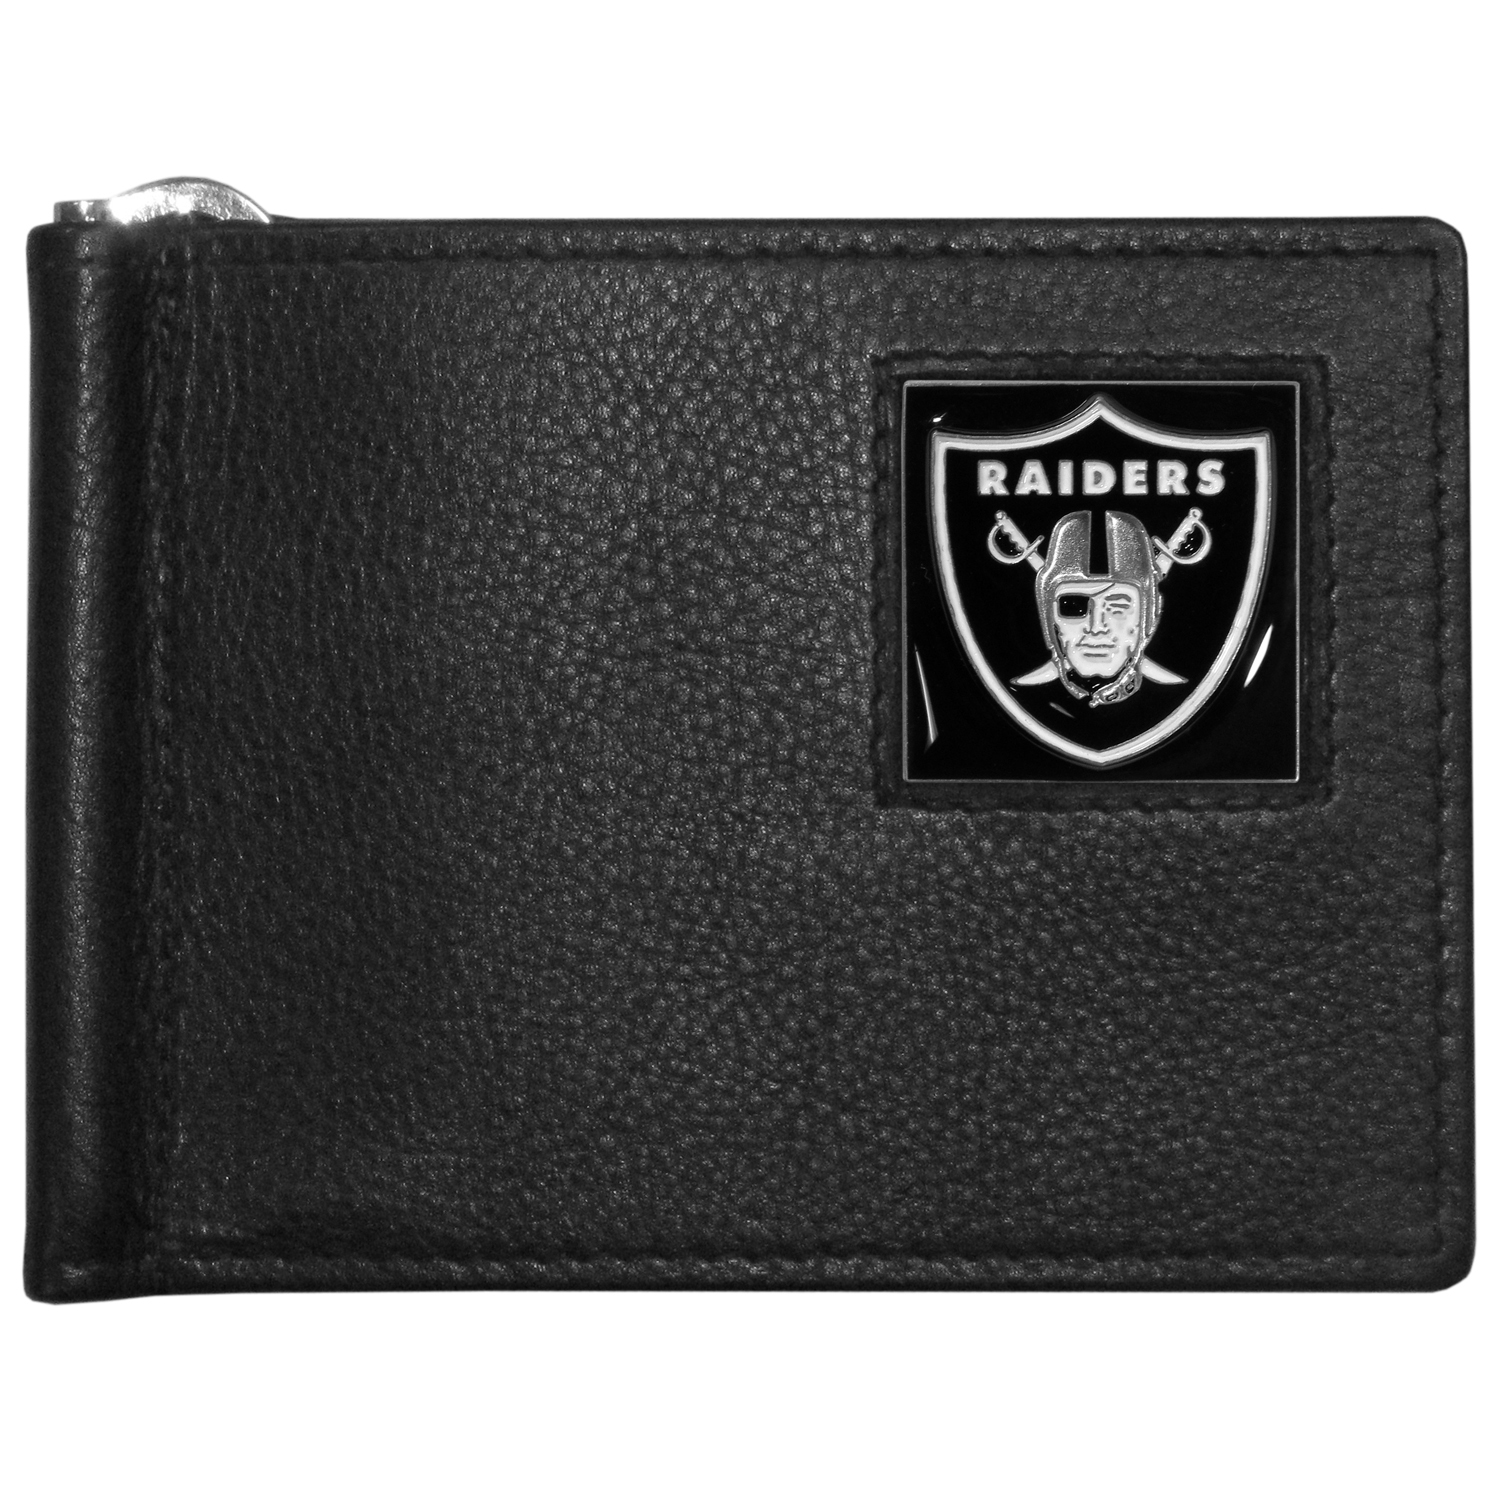 Oakland Raiders Leather Bill Clip Wallet - This cool new style wallet features an inner, metal bill clip that lips up for easy access. The super slim wallet holds tons of stuff with ample pockets, credit card slots & windowed ID slot.  The wallet is made of genuine fine grain leather and it finished with a metal Oakland Raiders emblem. The wallet is shipped in gift box packaging.